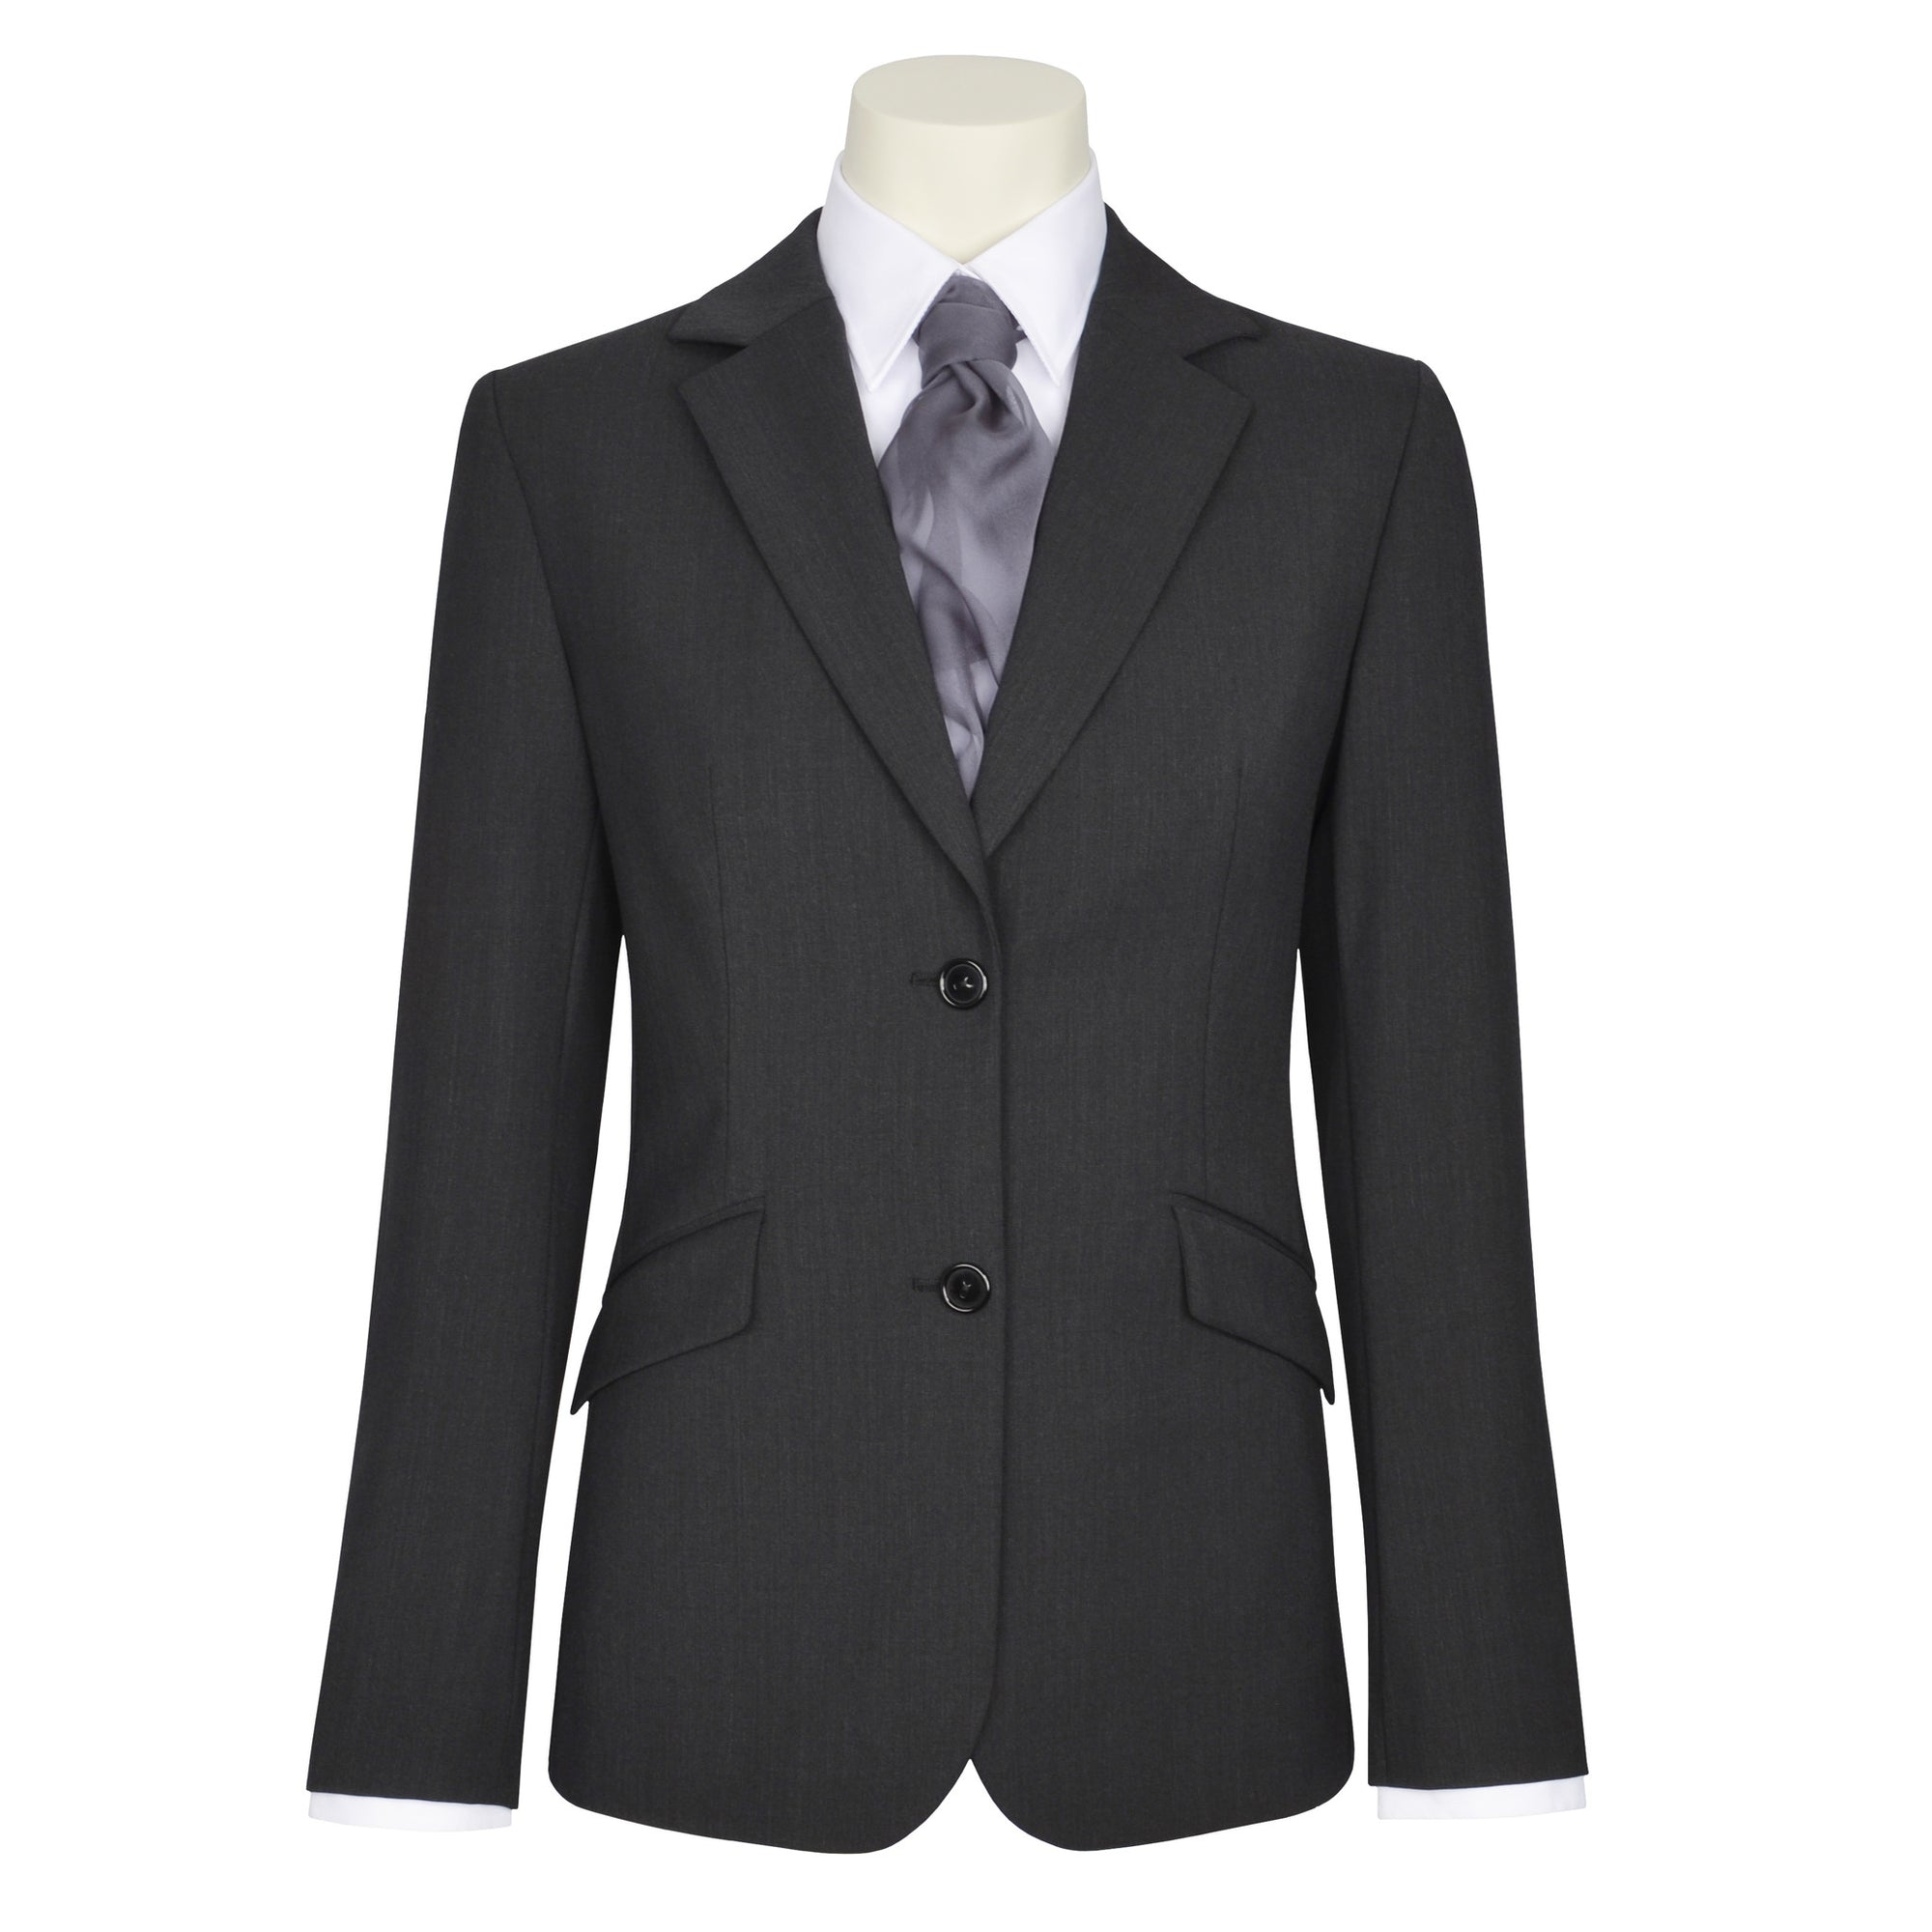 Ladies Suit Jacket - Black Label - peterdrew.com  - 1